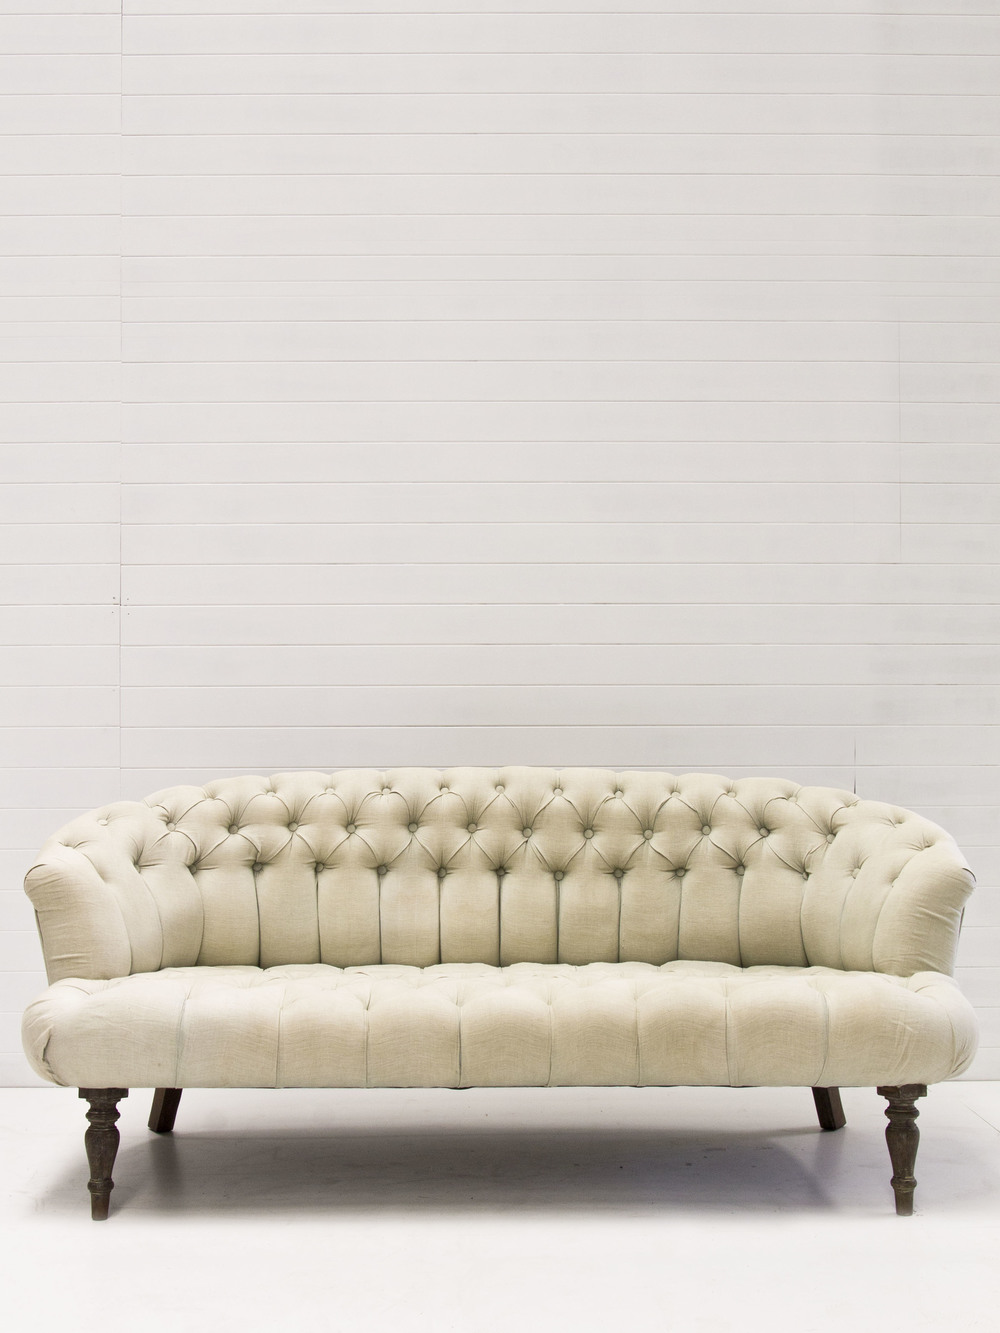 Seafoam button tufted sofa.jpg